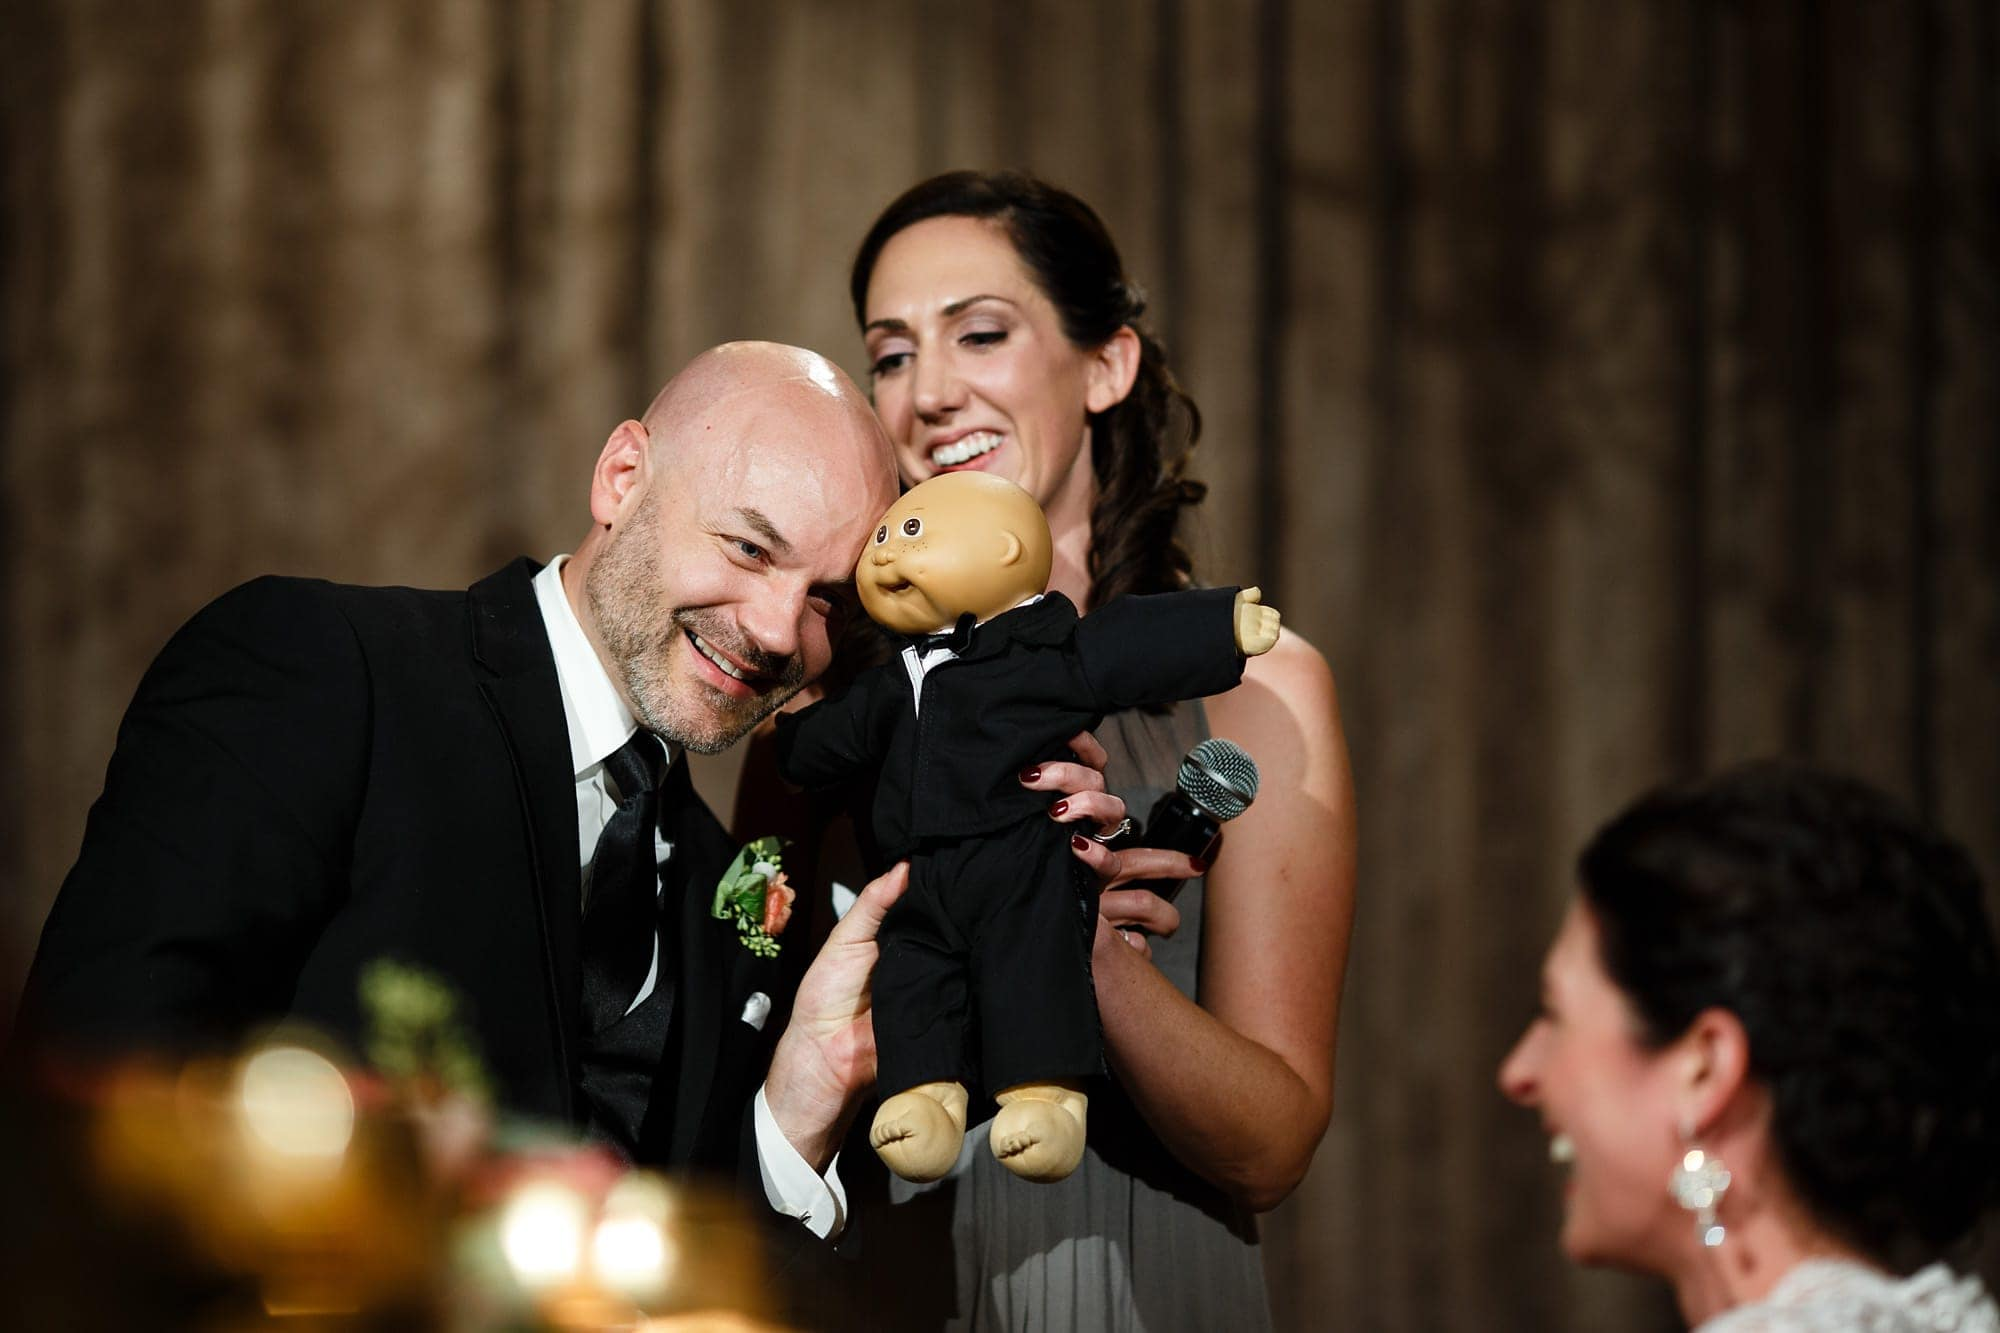 Brad aknowledges his resembelance to a cabbage patch doll as Christina's sister gives a speech during their Bridgeport Art Center wedding